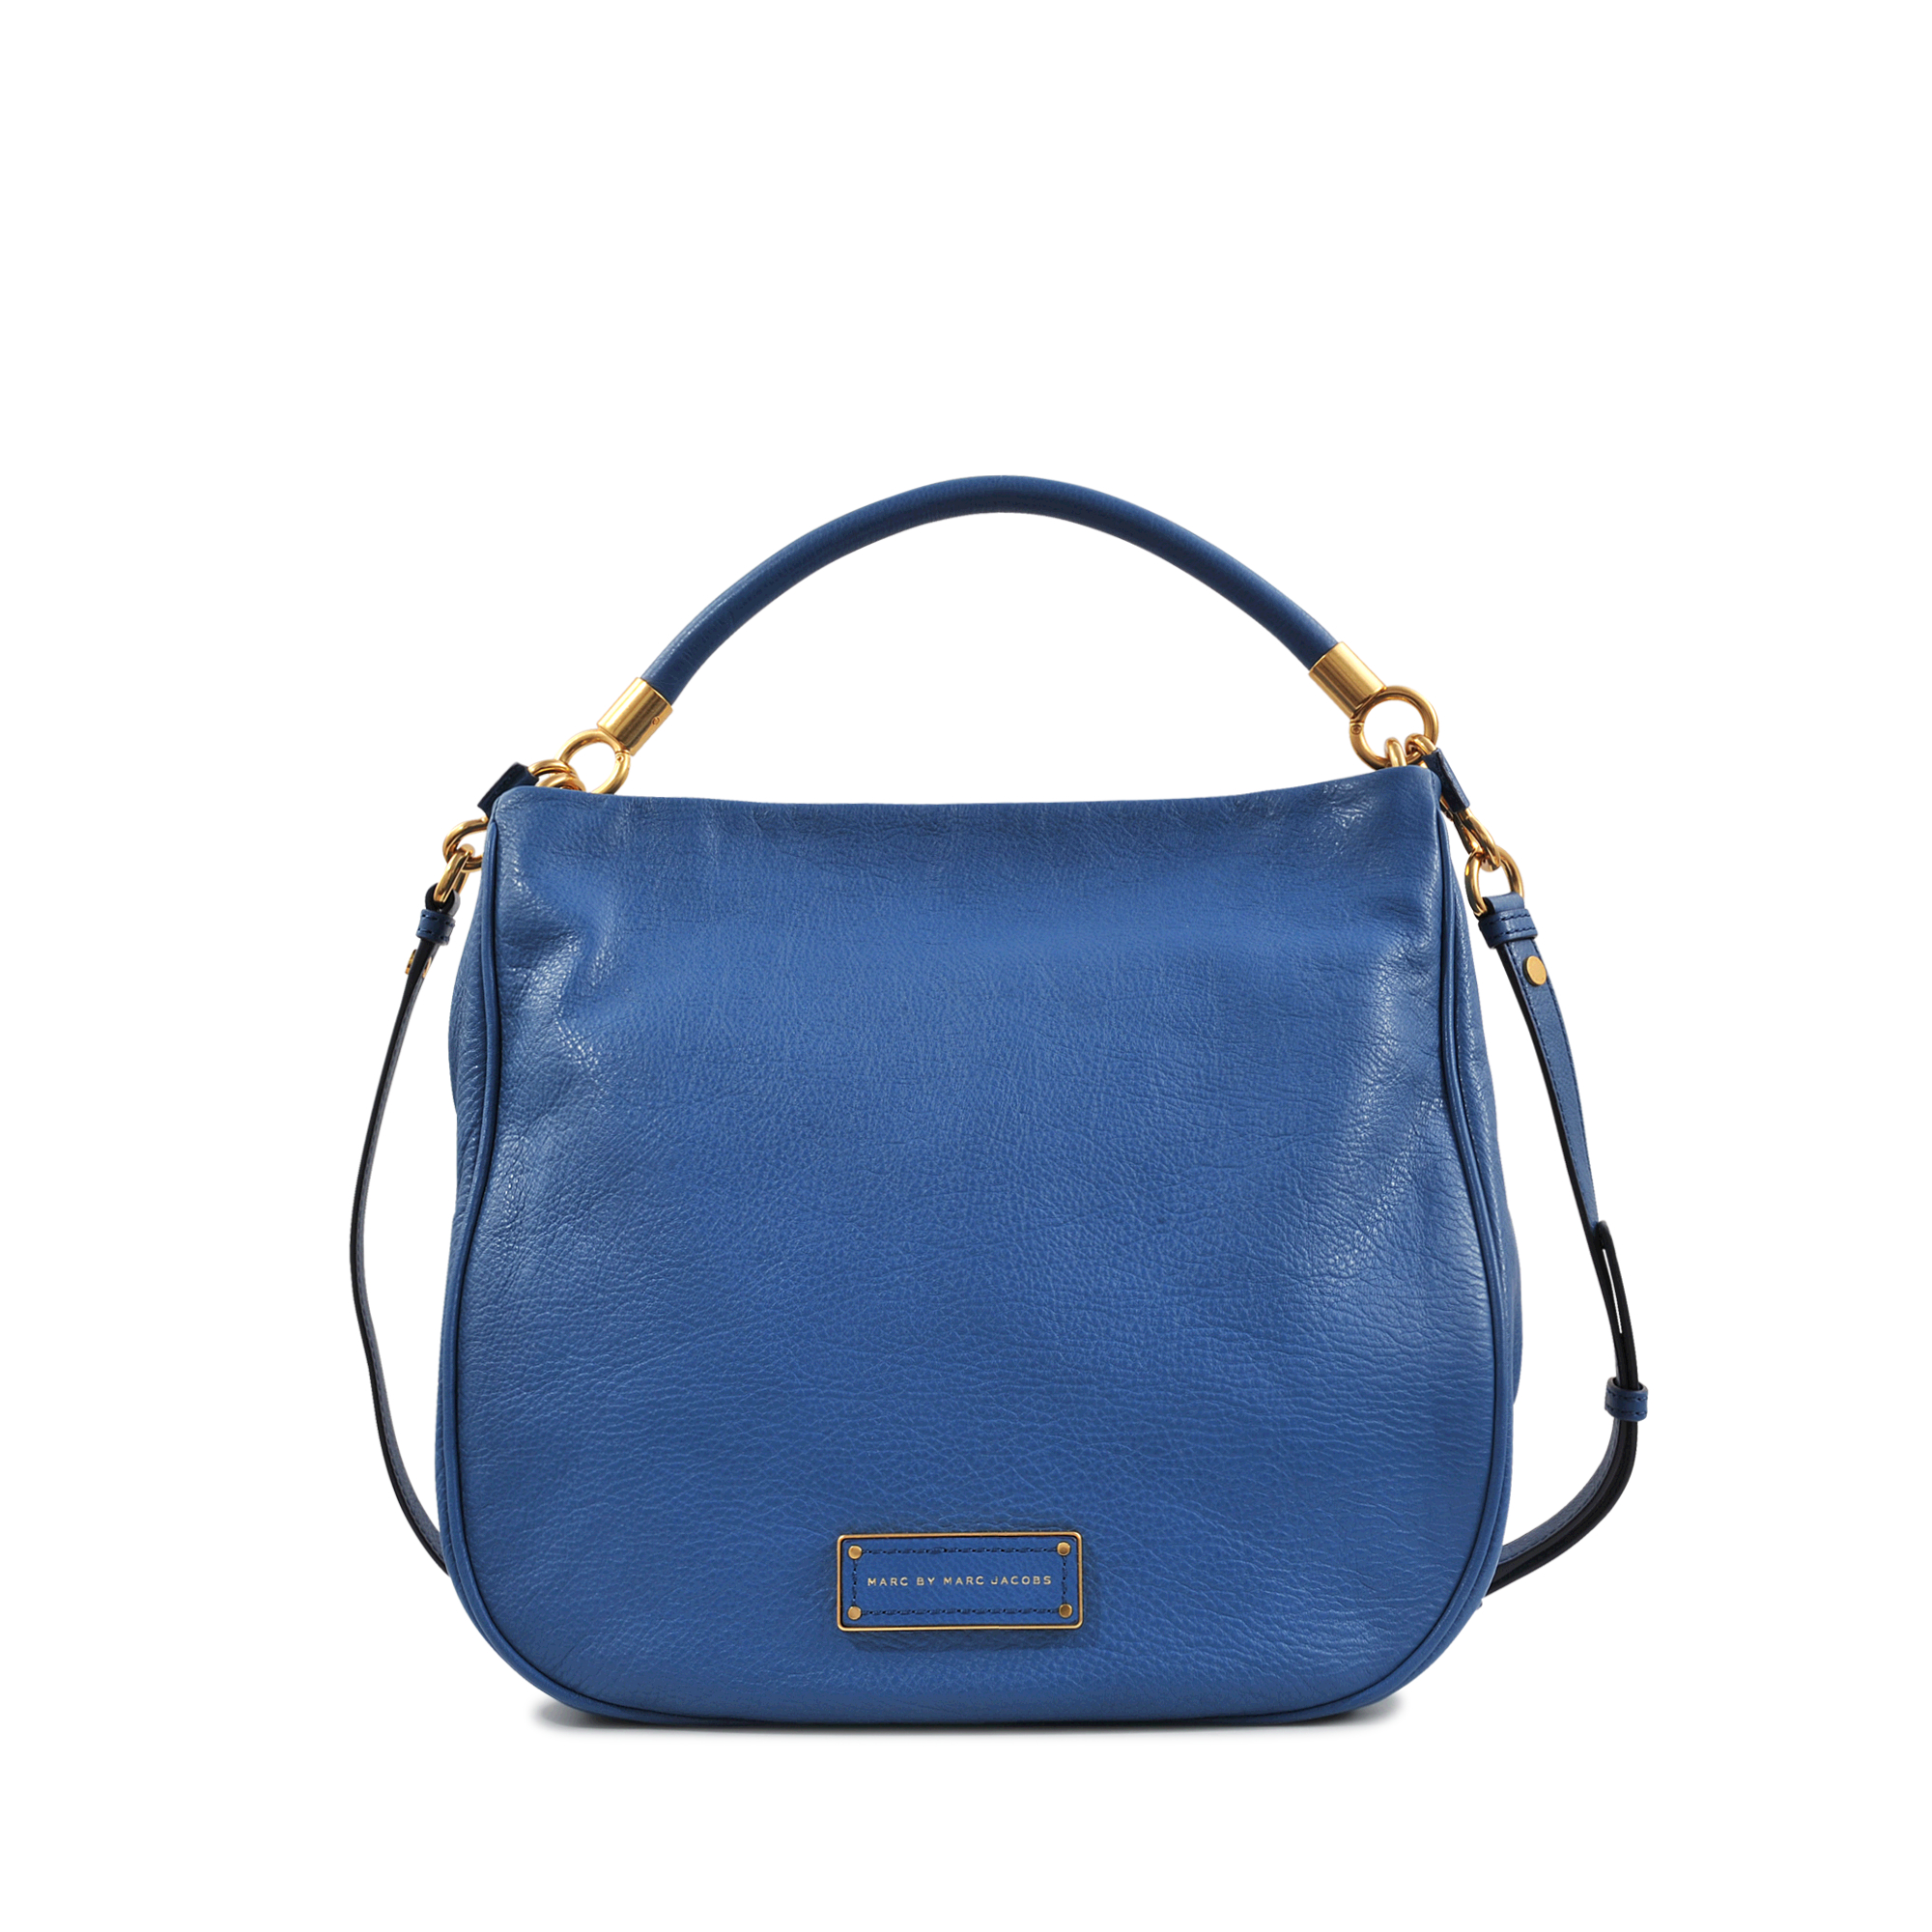 marc by marc jacobs hobo too hot to handle bag in blue lyst. Black Bedroom Furniture Sets. Home Design Ideas